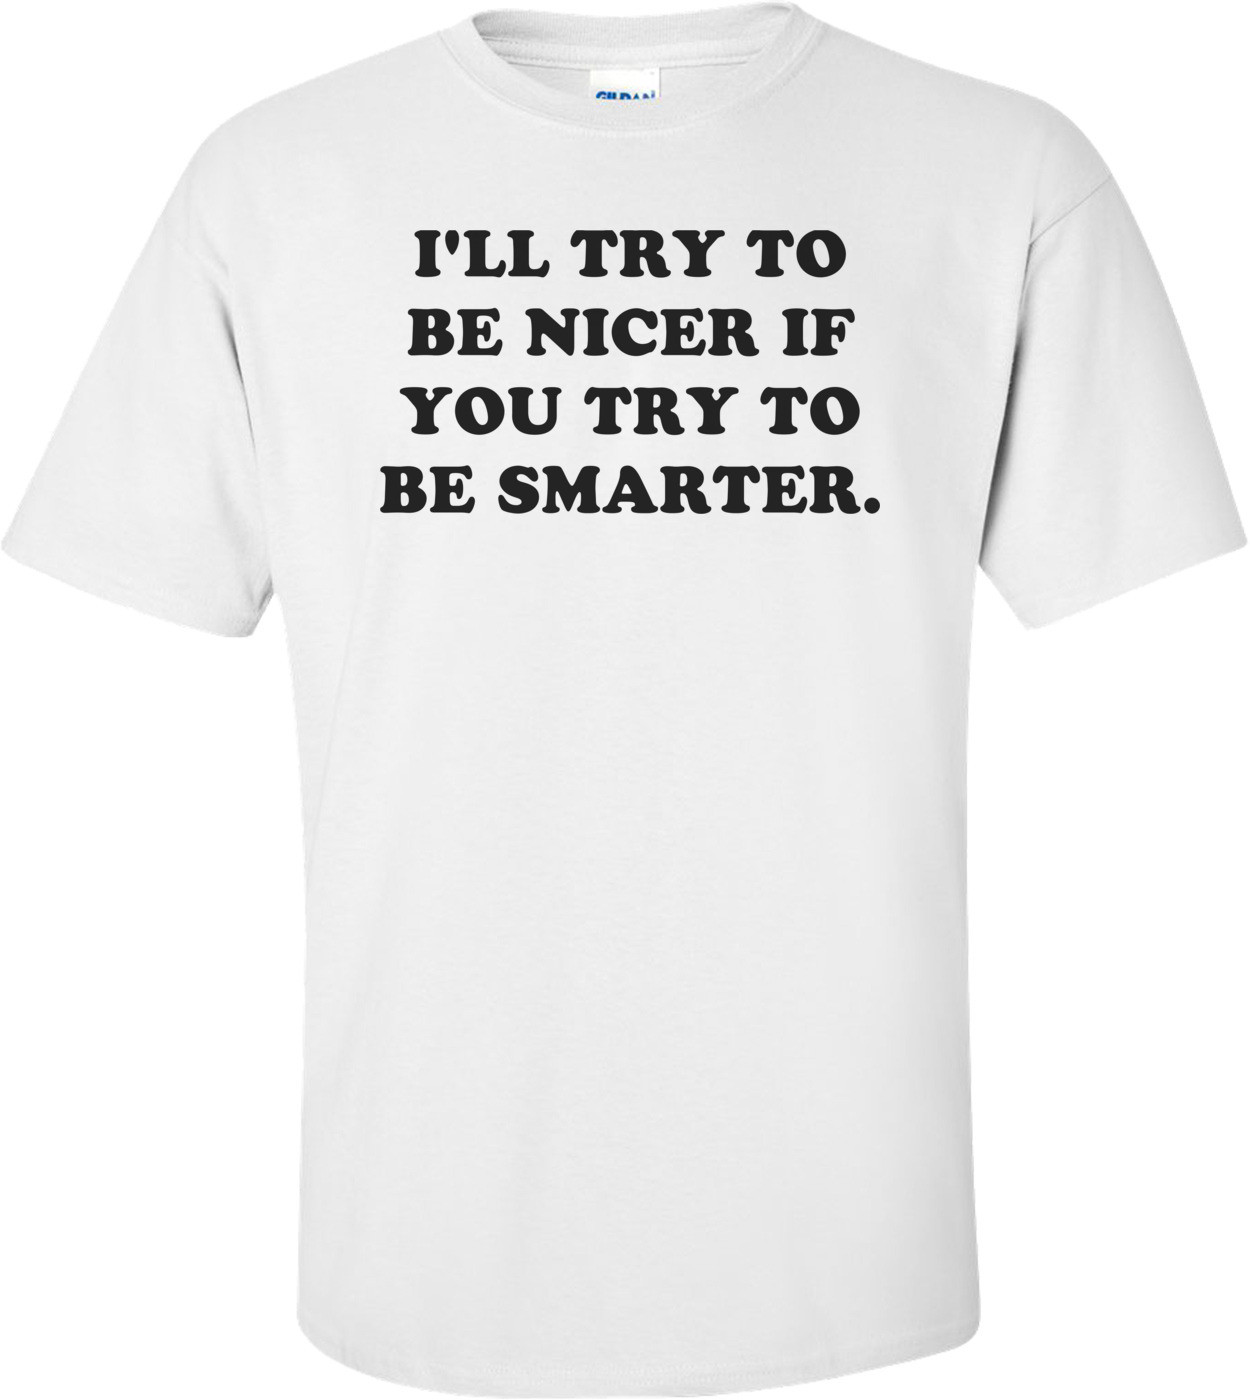 I'LL TRY TO BE NICER IF YOU TRY TO BE SMARTER. Shirt